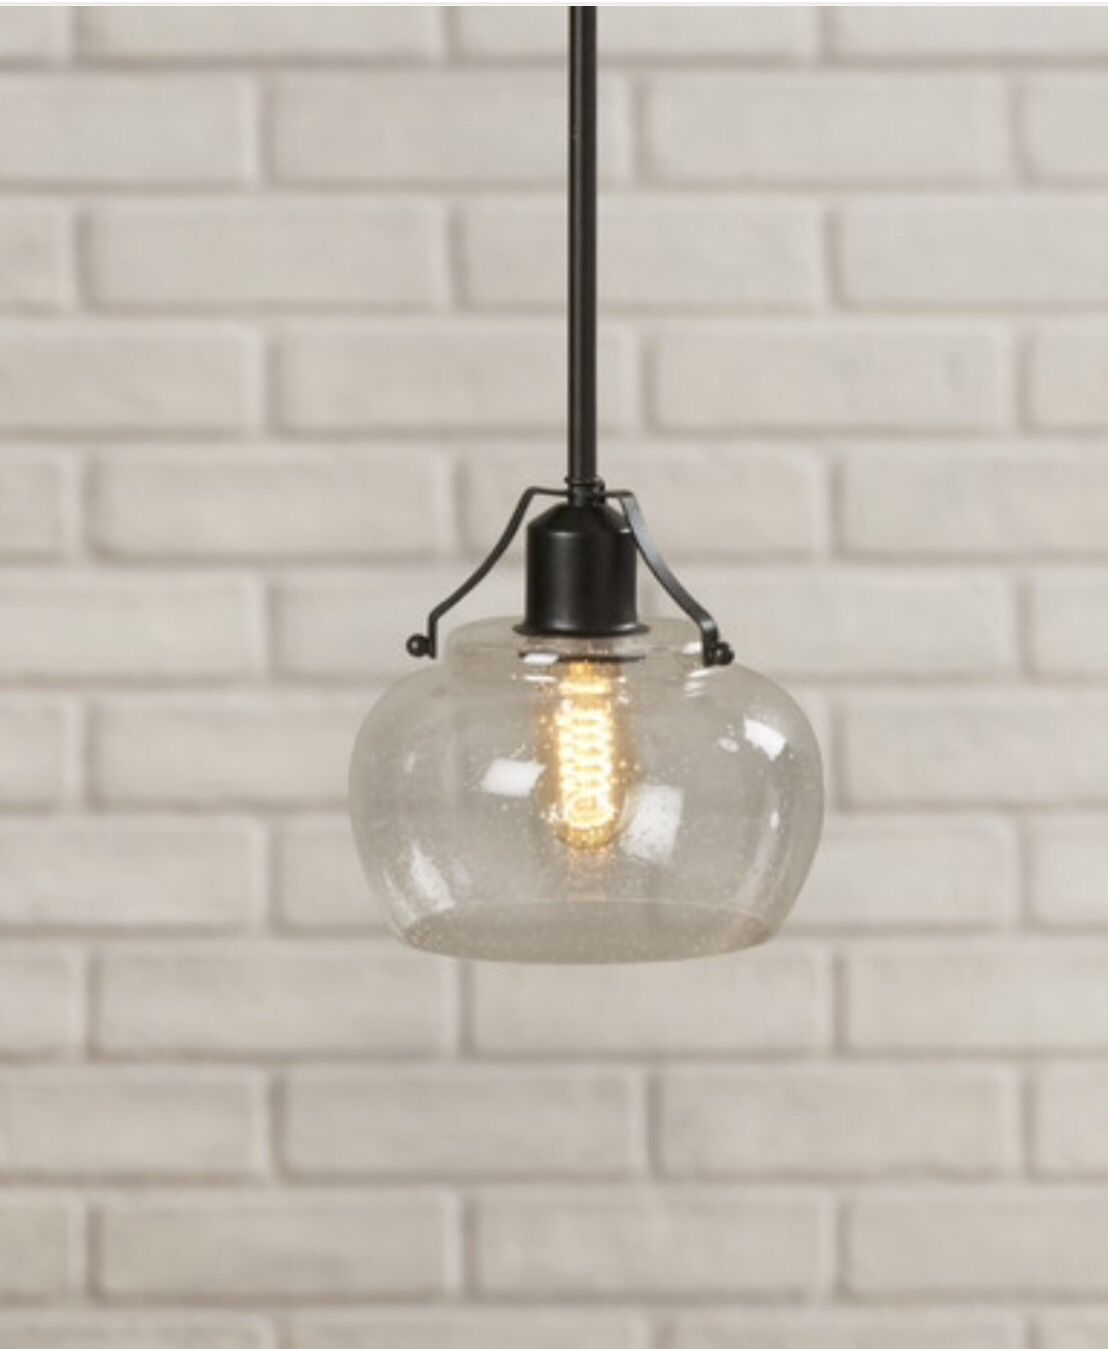 Pendant Lights Over Kitchen Sink Sinks And Faucets Home: Pendant Lights For Peninsula (2-3 Depending On Size